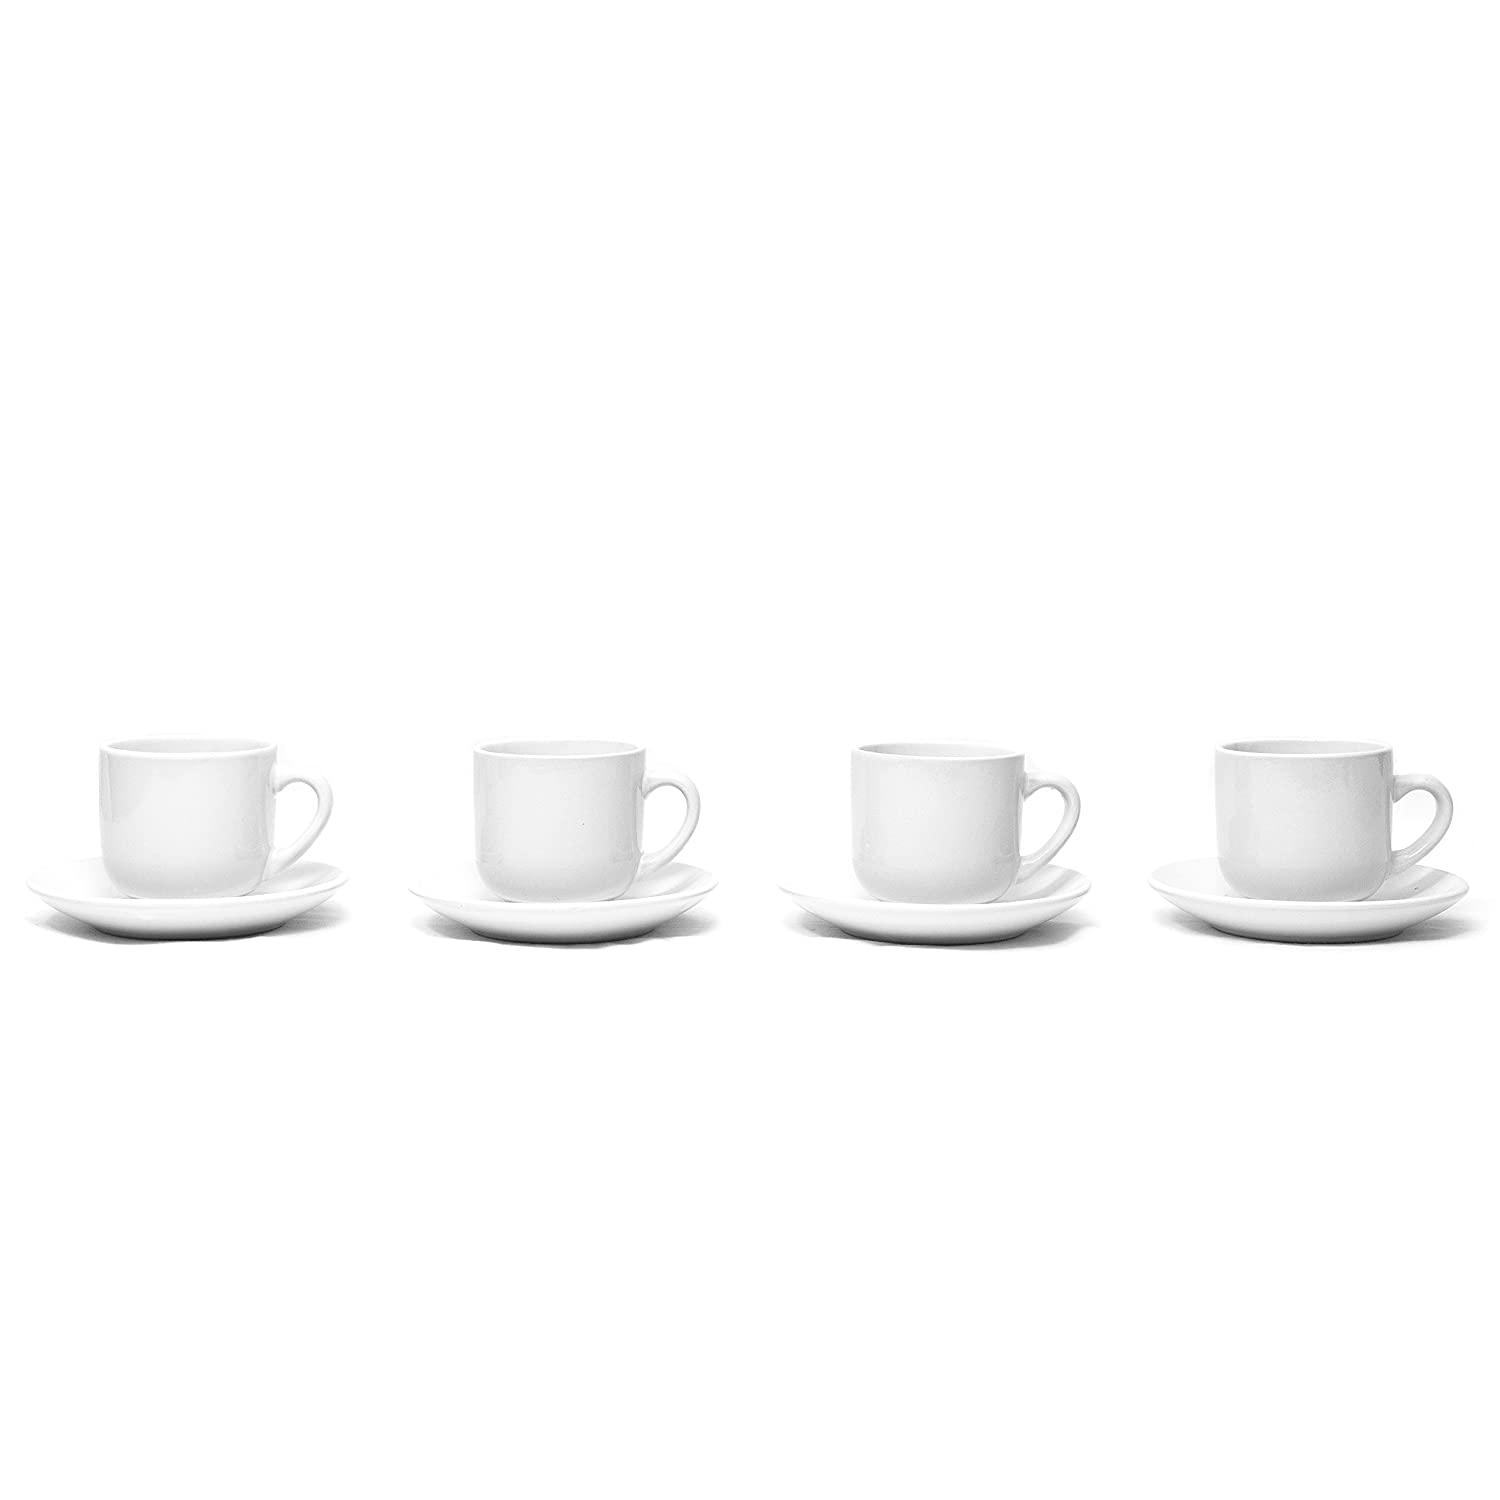 Set of 4 4 ounce Espresso Cups with Saucers by Bruntmor White Ceramic